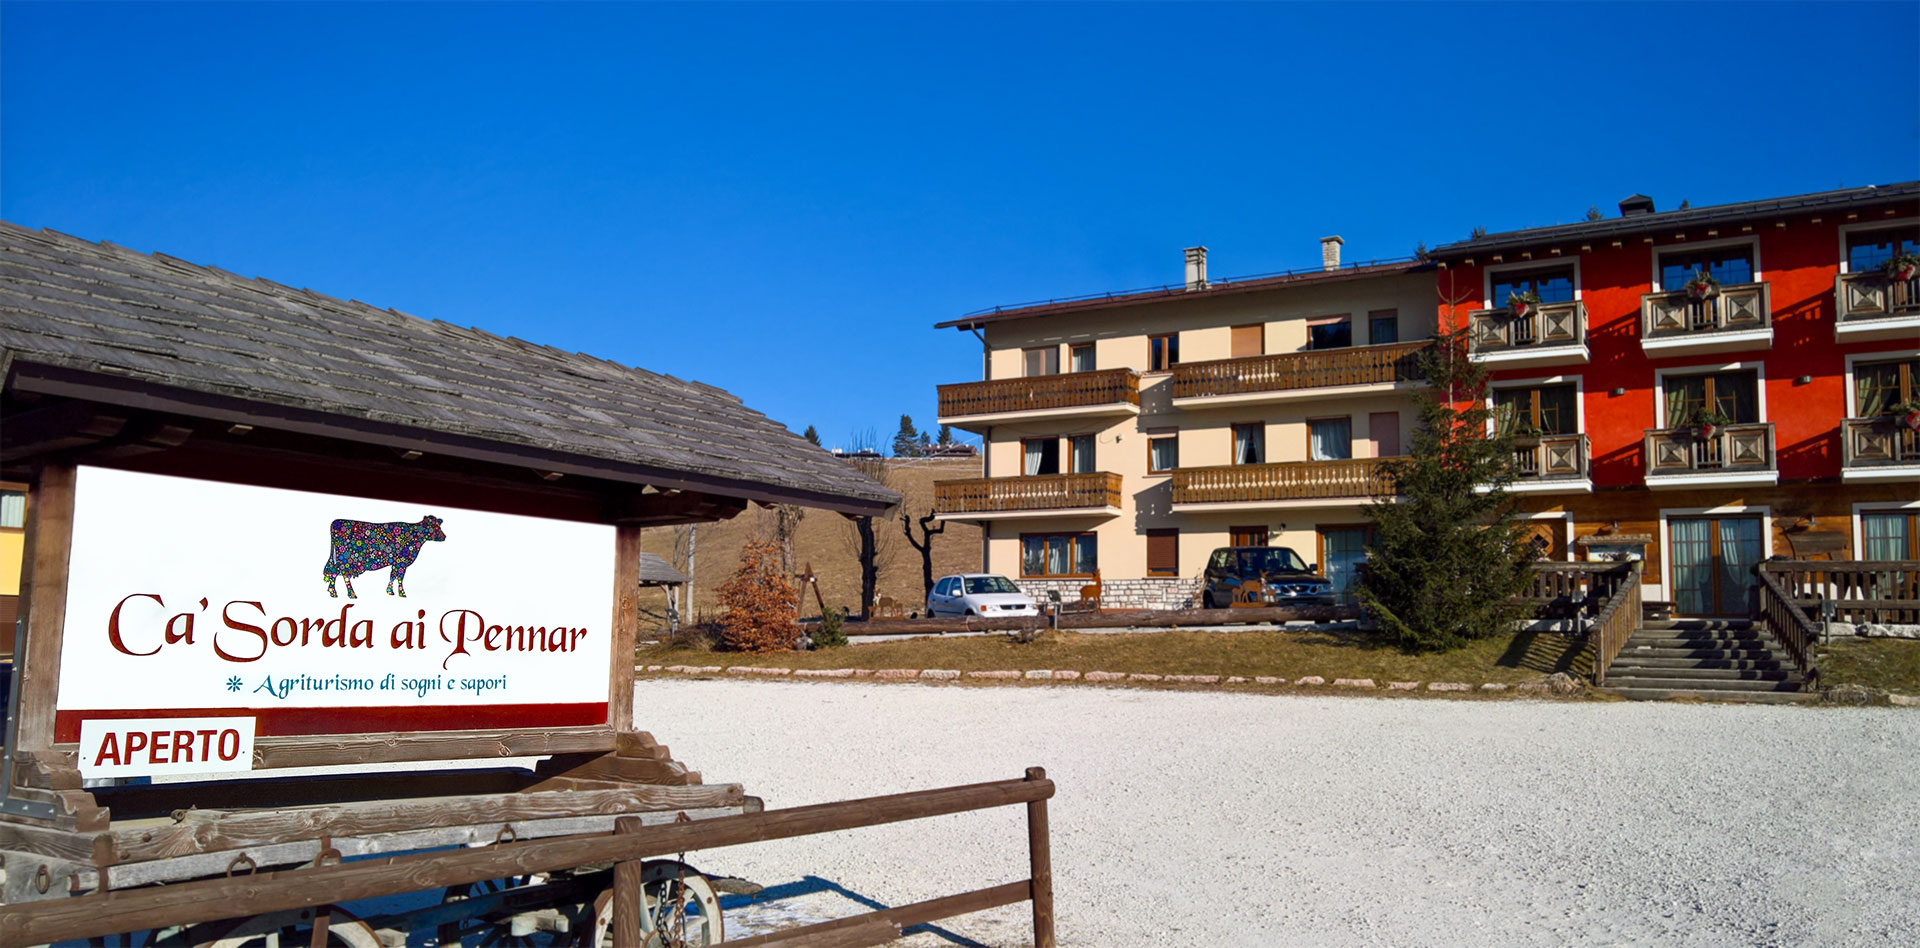 Agriturismo Ca 'Sorda Ai Pennar will be closed for